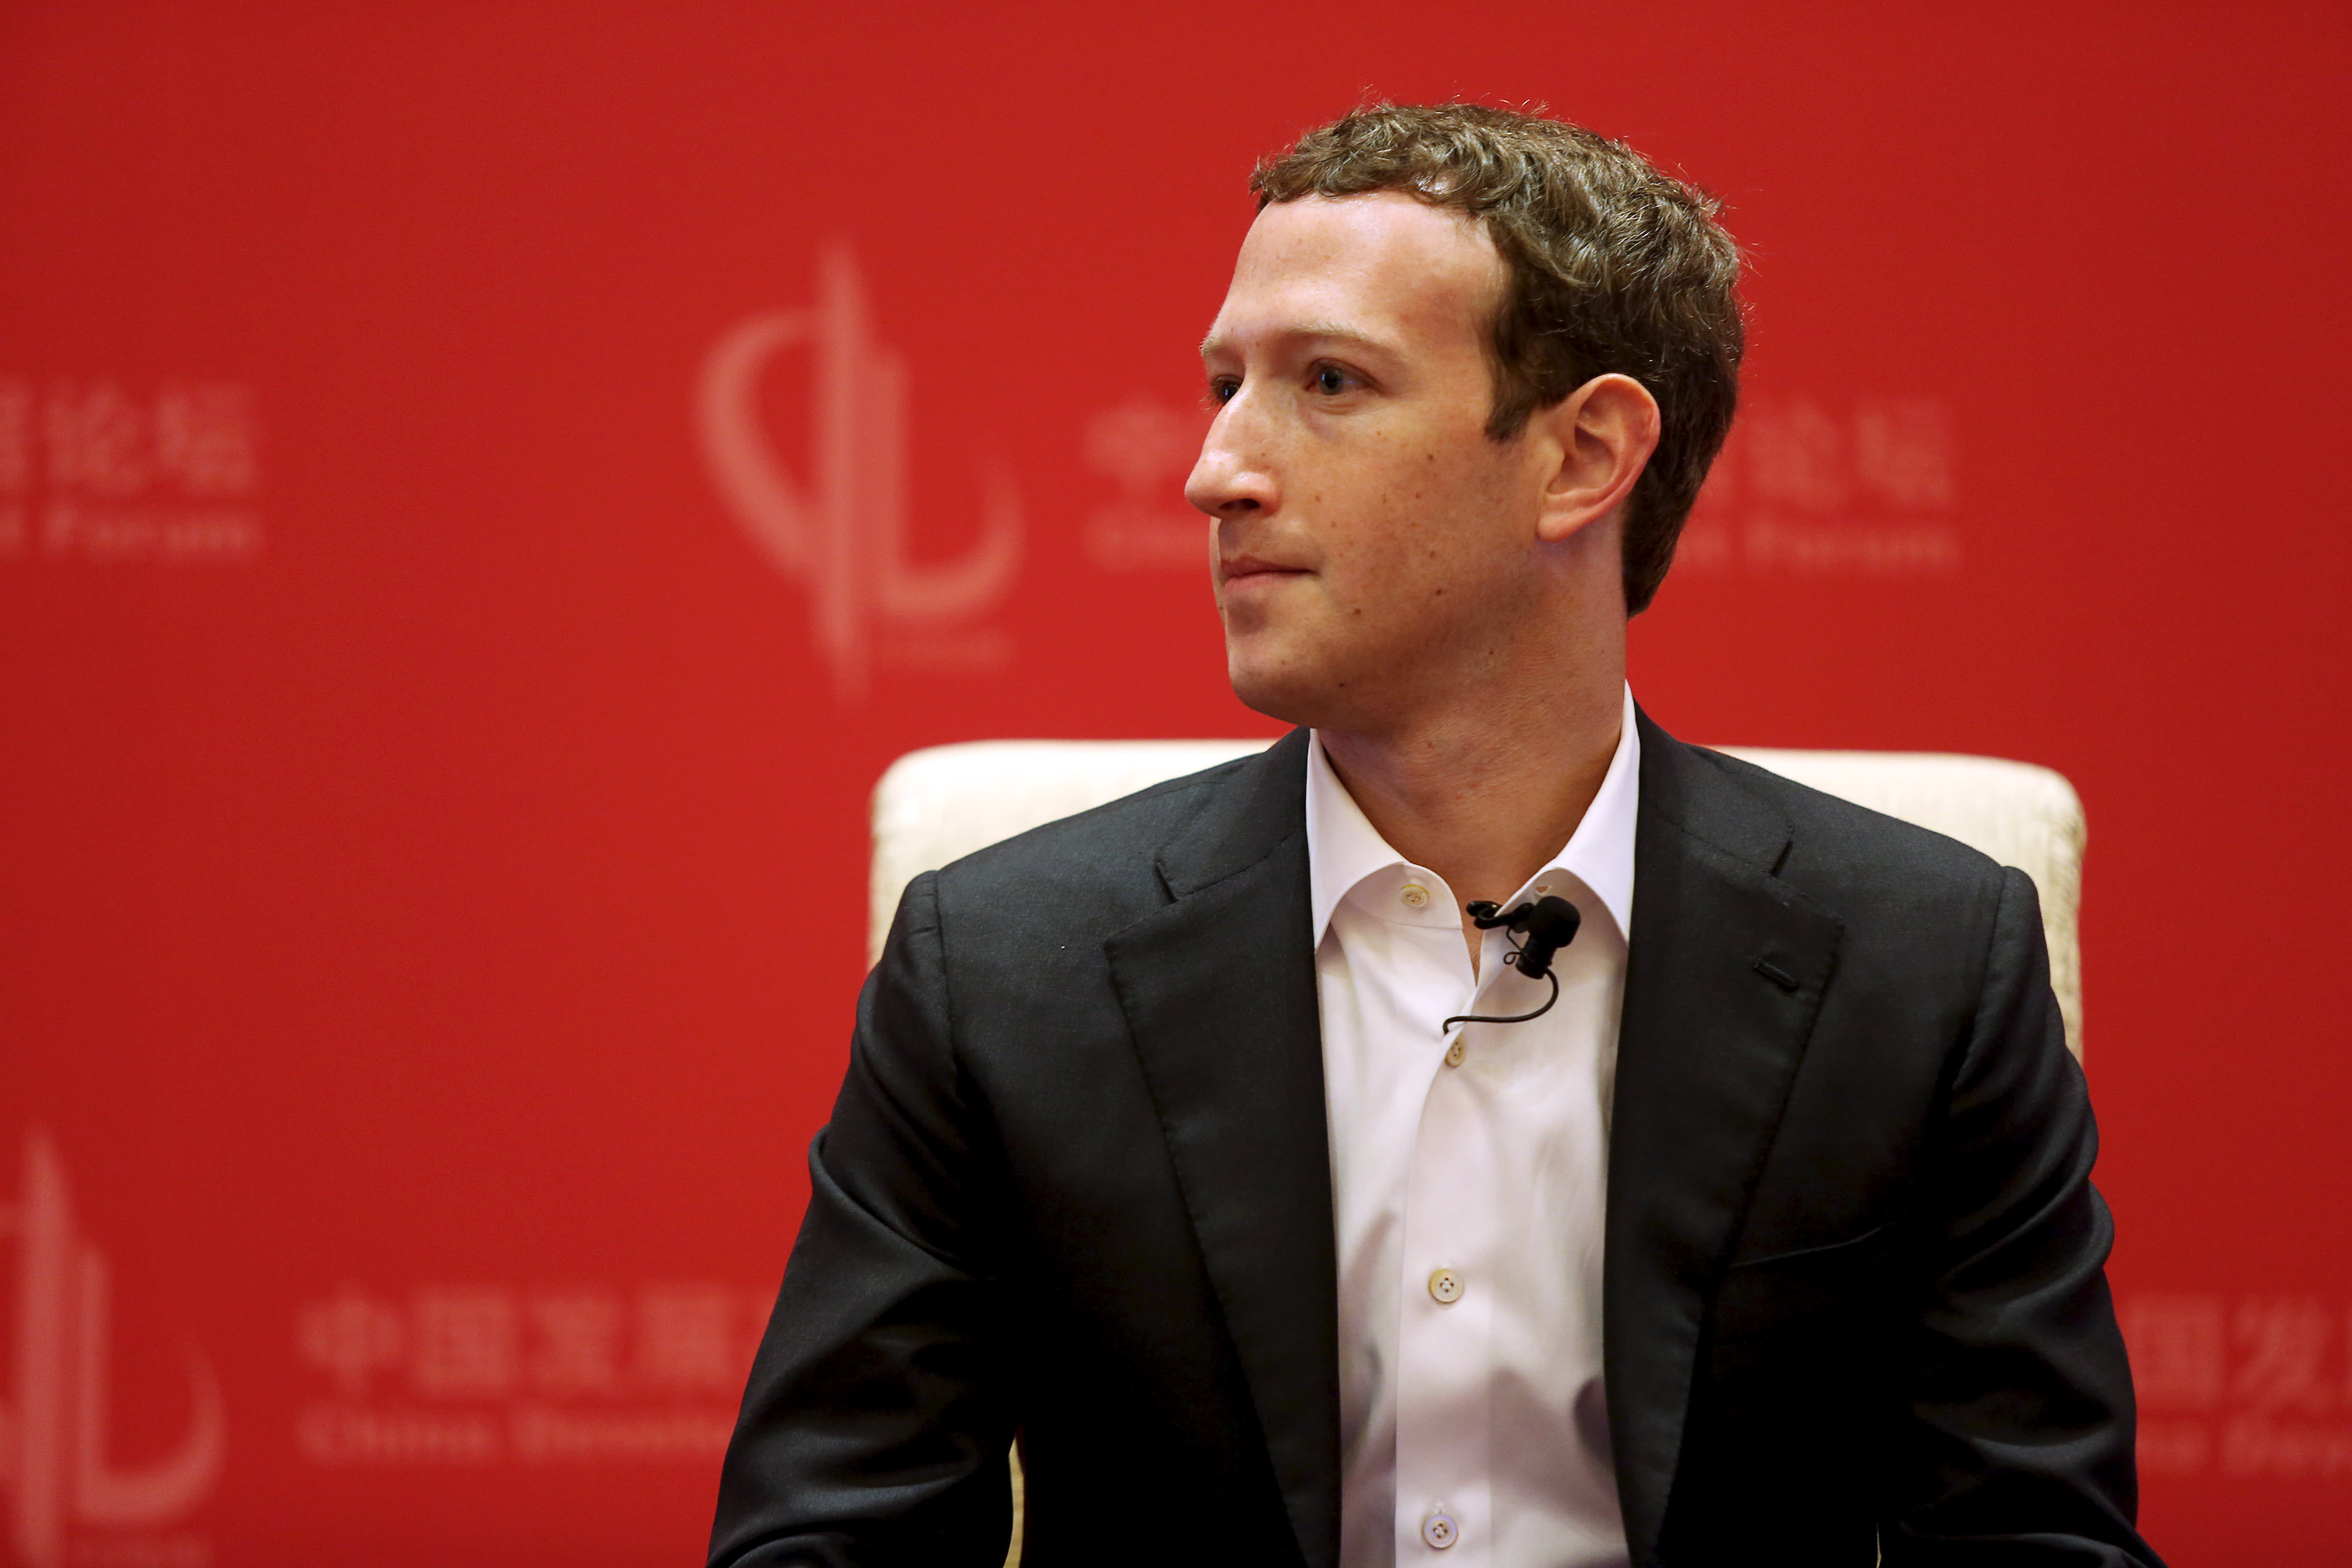 Facebook to report first-quarter earnings after the bell